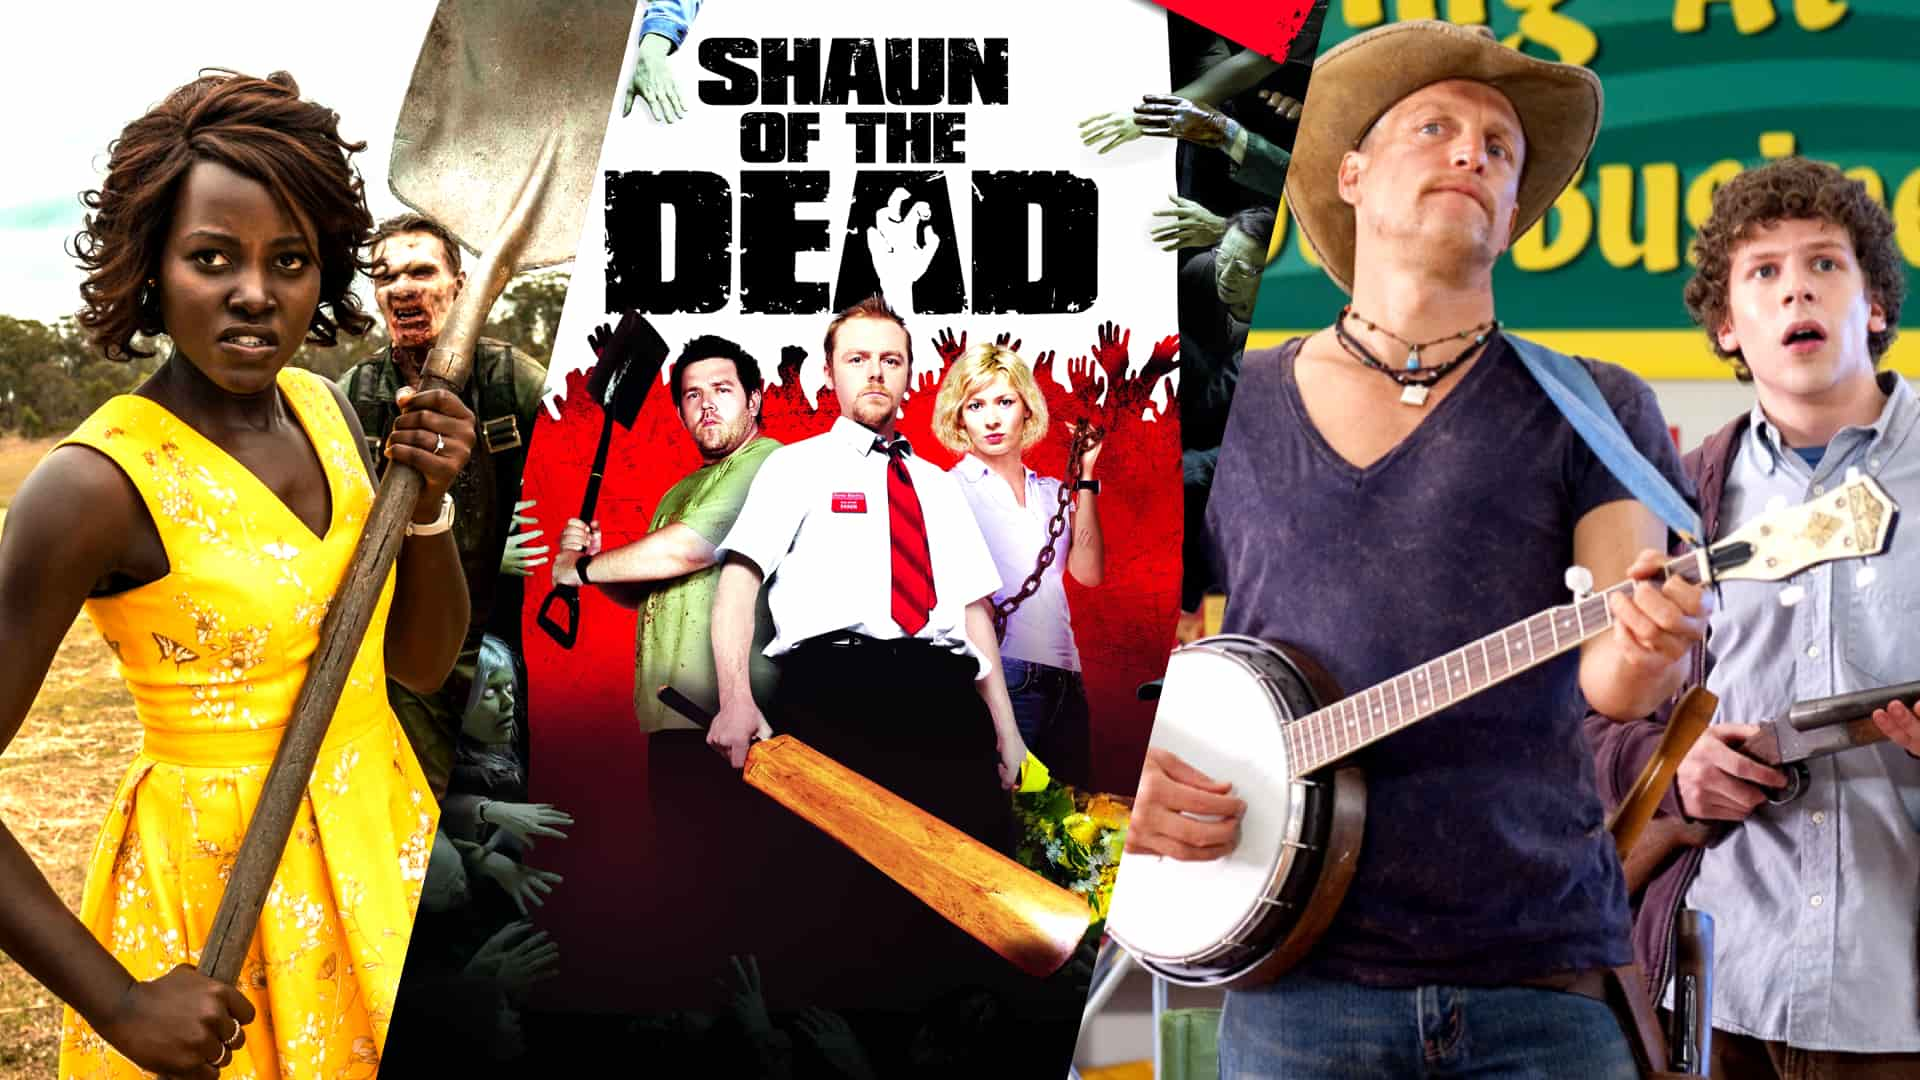 Best Funny Zombie Movies - Featured - StudioBinder